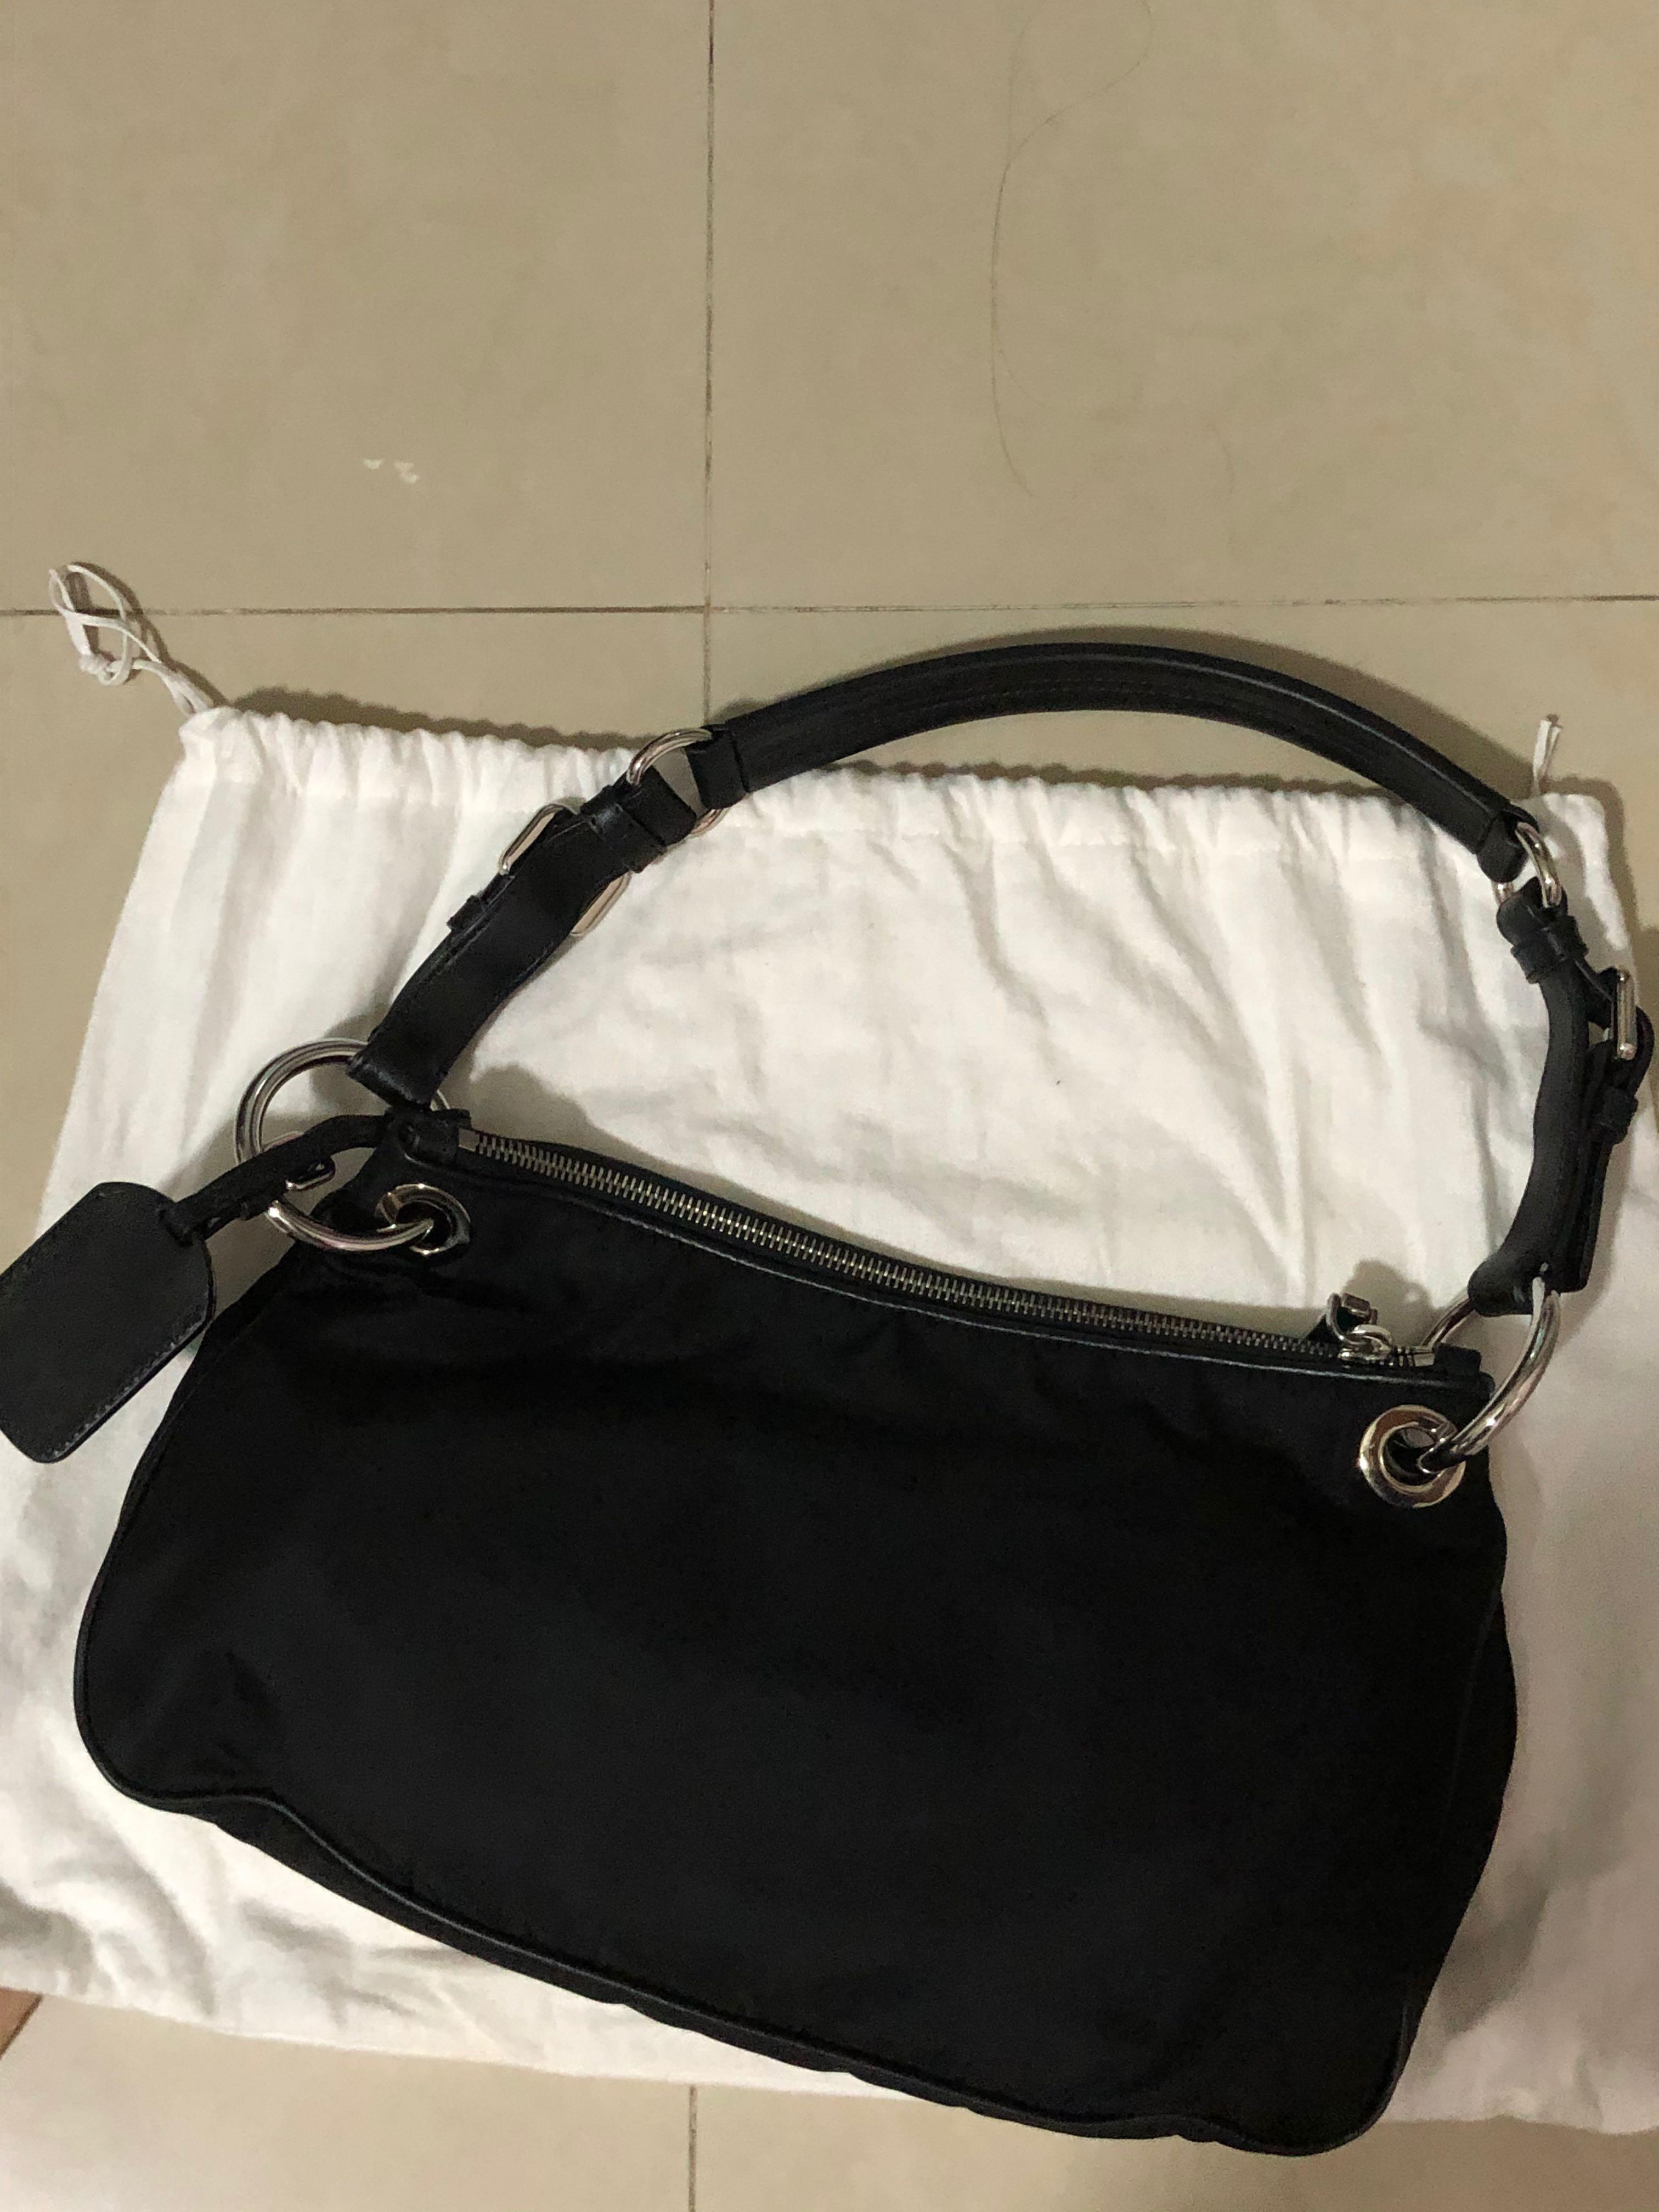 Burberry blue label black Miu Miu pink shopper tote hand crossbody Prada black logo shoulder bag